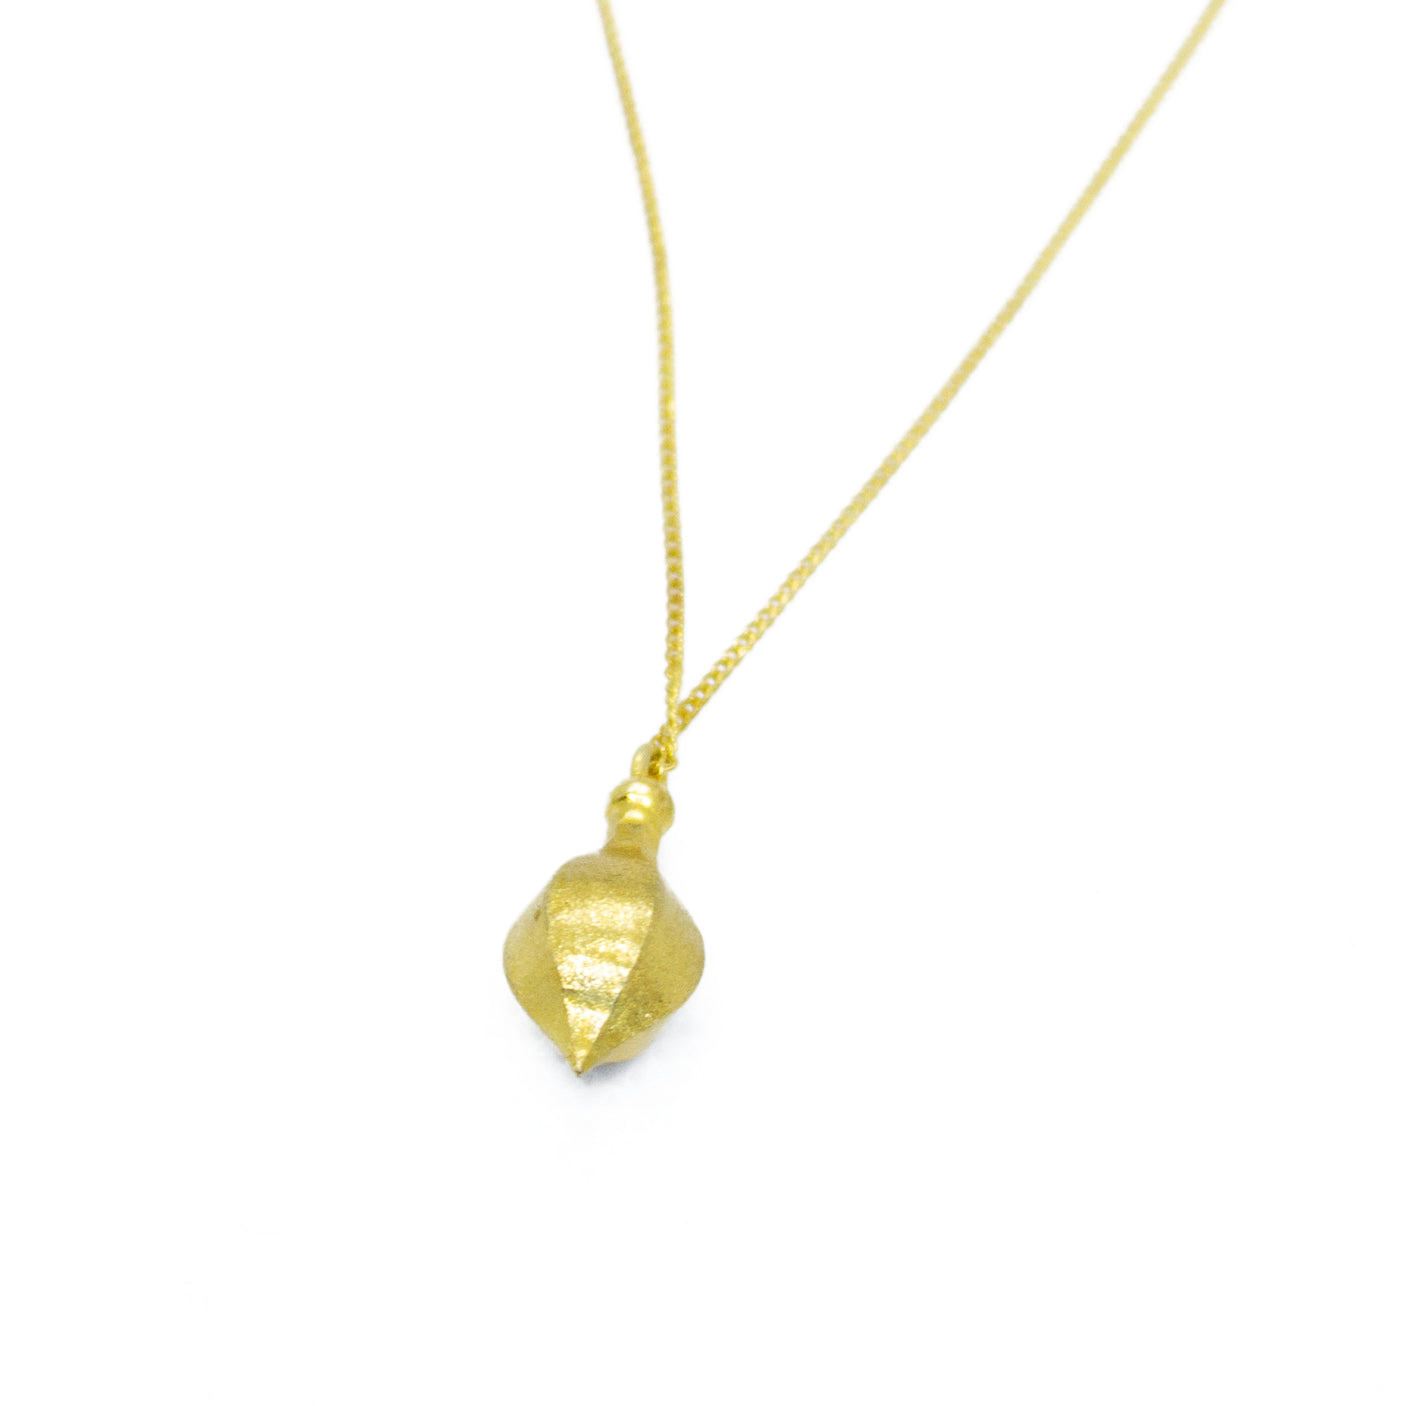 Long Chain Necklace with Acorn Shape Pendant